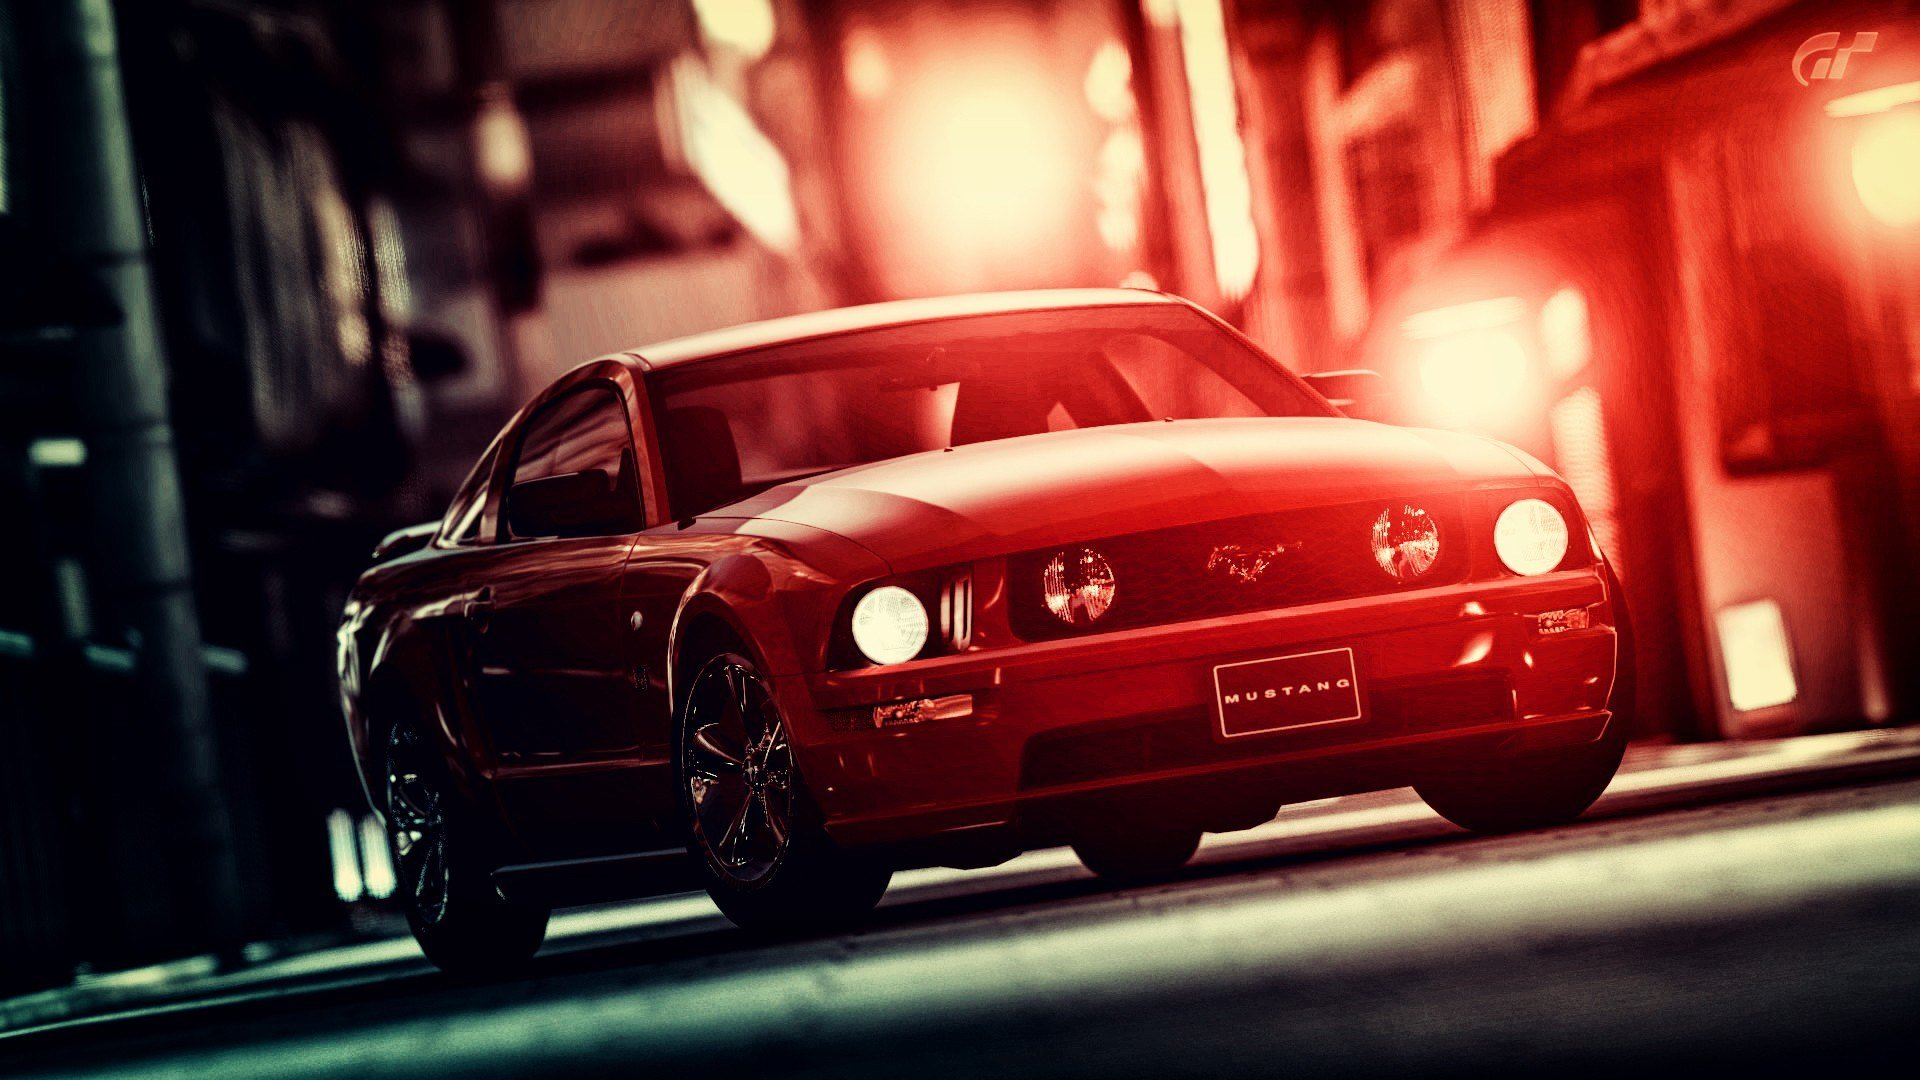 Latest Ford Mustang Background Images Photos Pictures Free Download